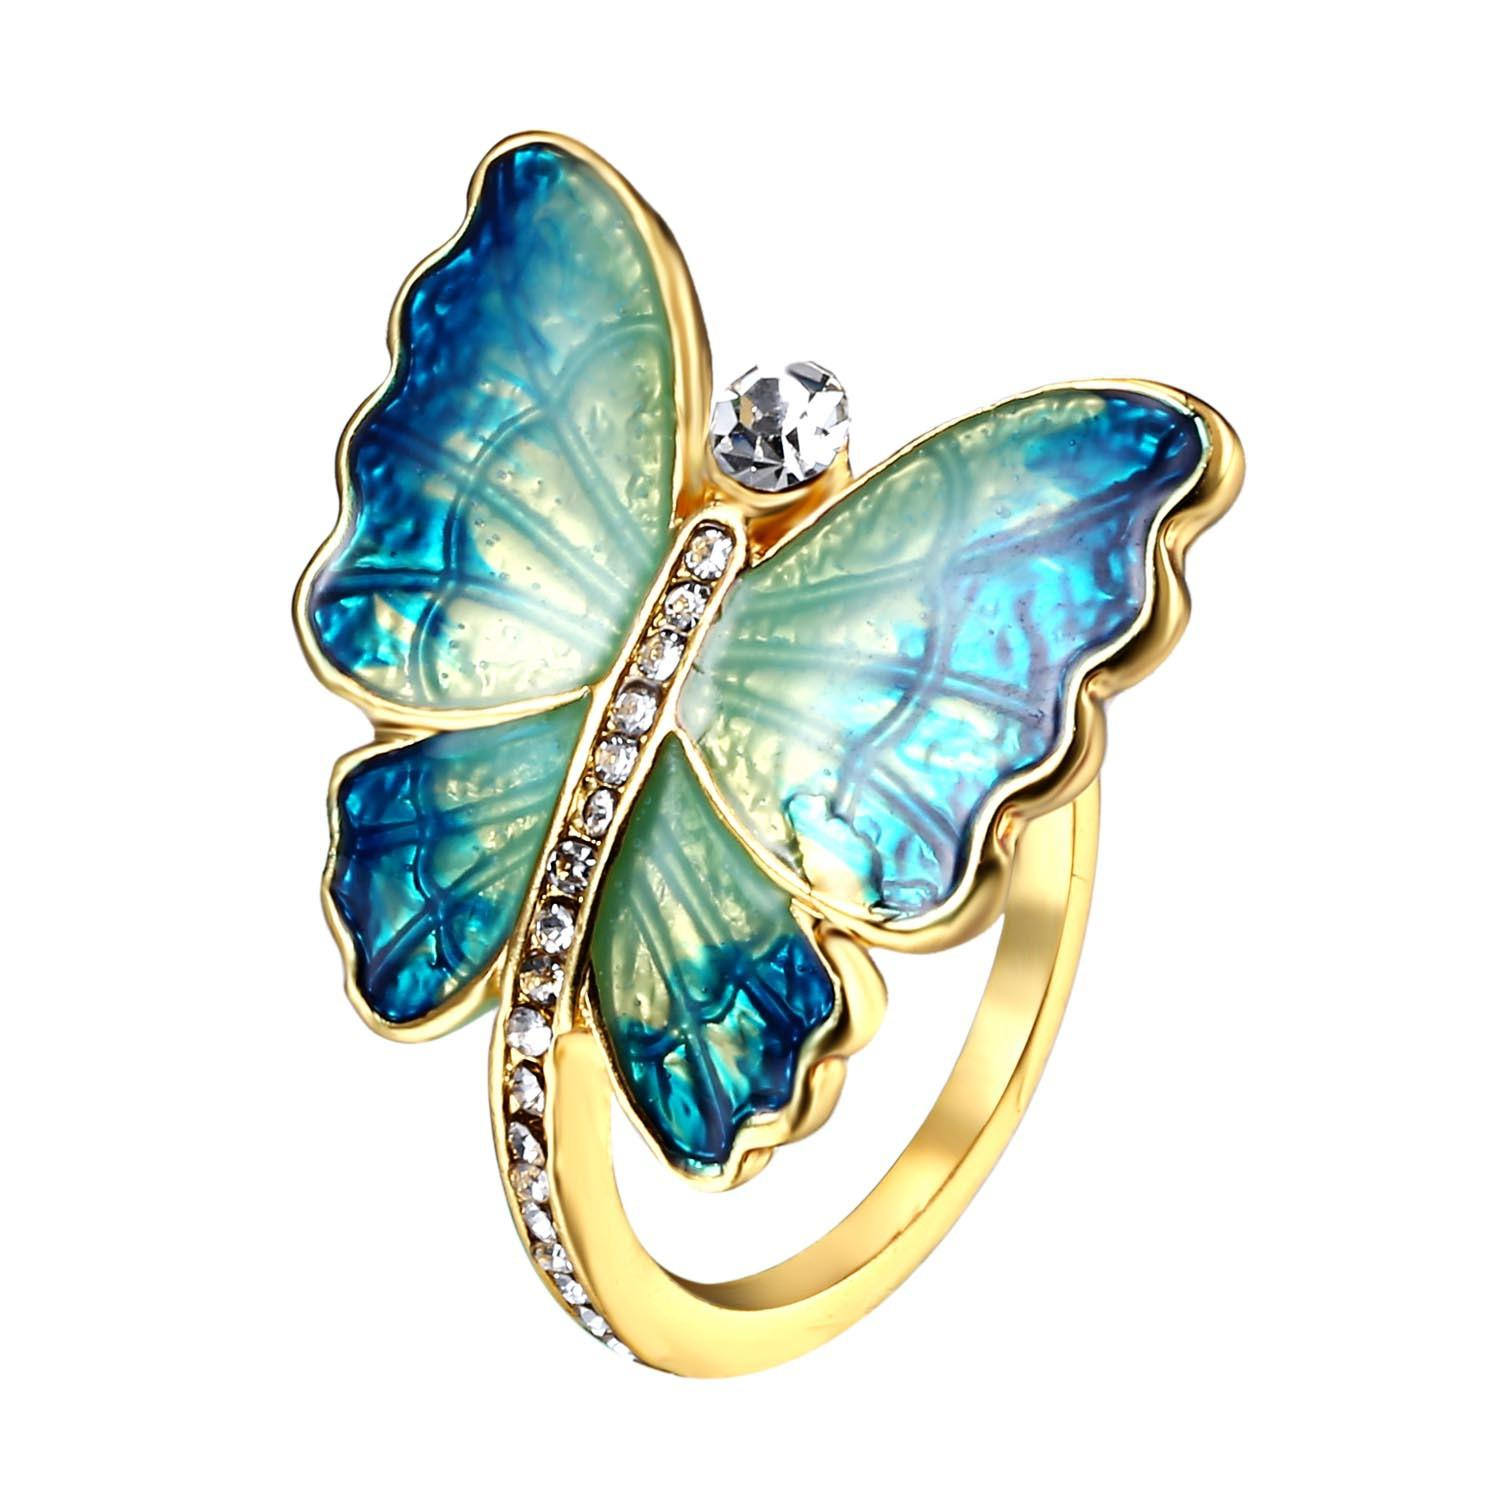 Sweet Enamel Butterfly Finger Ring Trendy Insect Diamond Personality Rings Gift for Women RI17Y012M1 COLOR